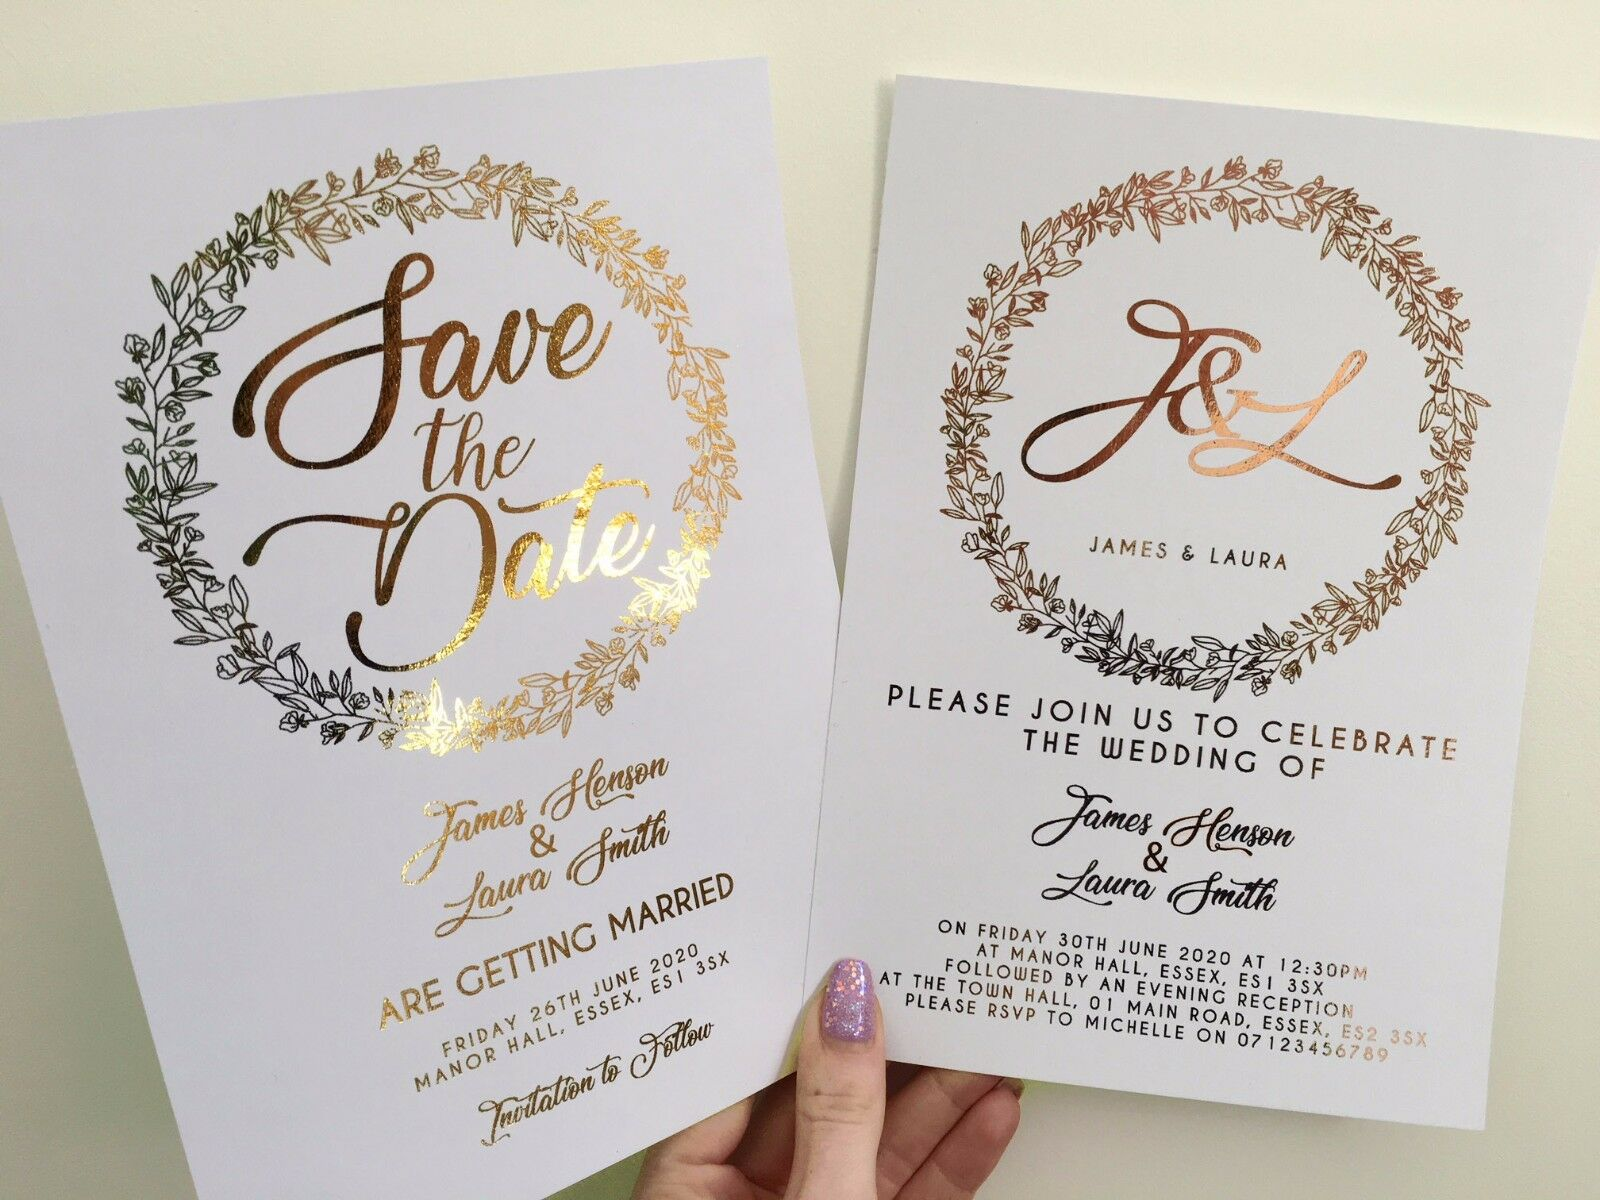 Or/Or Rose the Feuille Personnalisé Mariage Invitations Save the Rose Date invite e91ea2